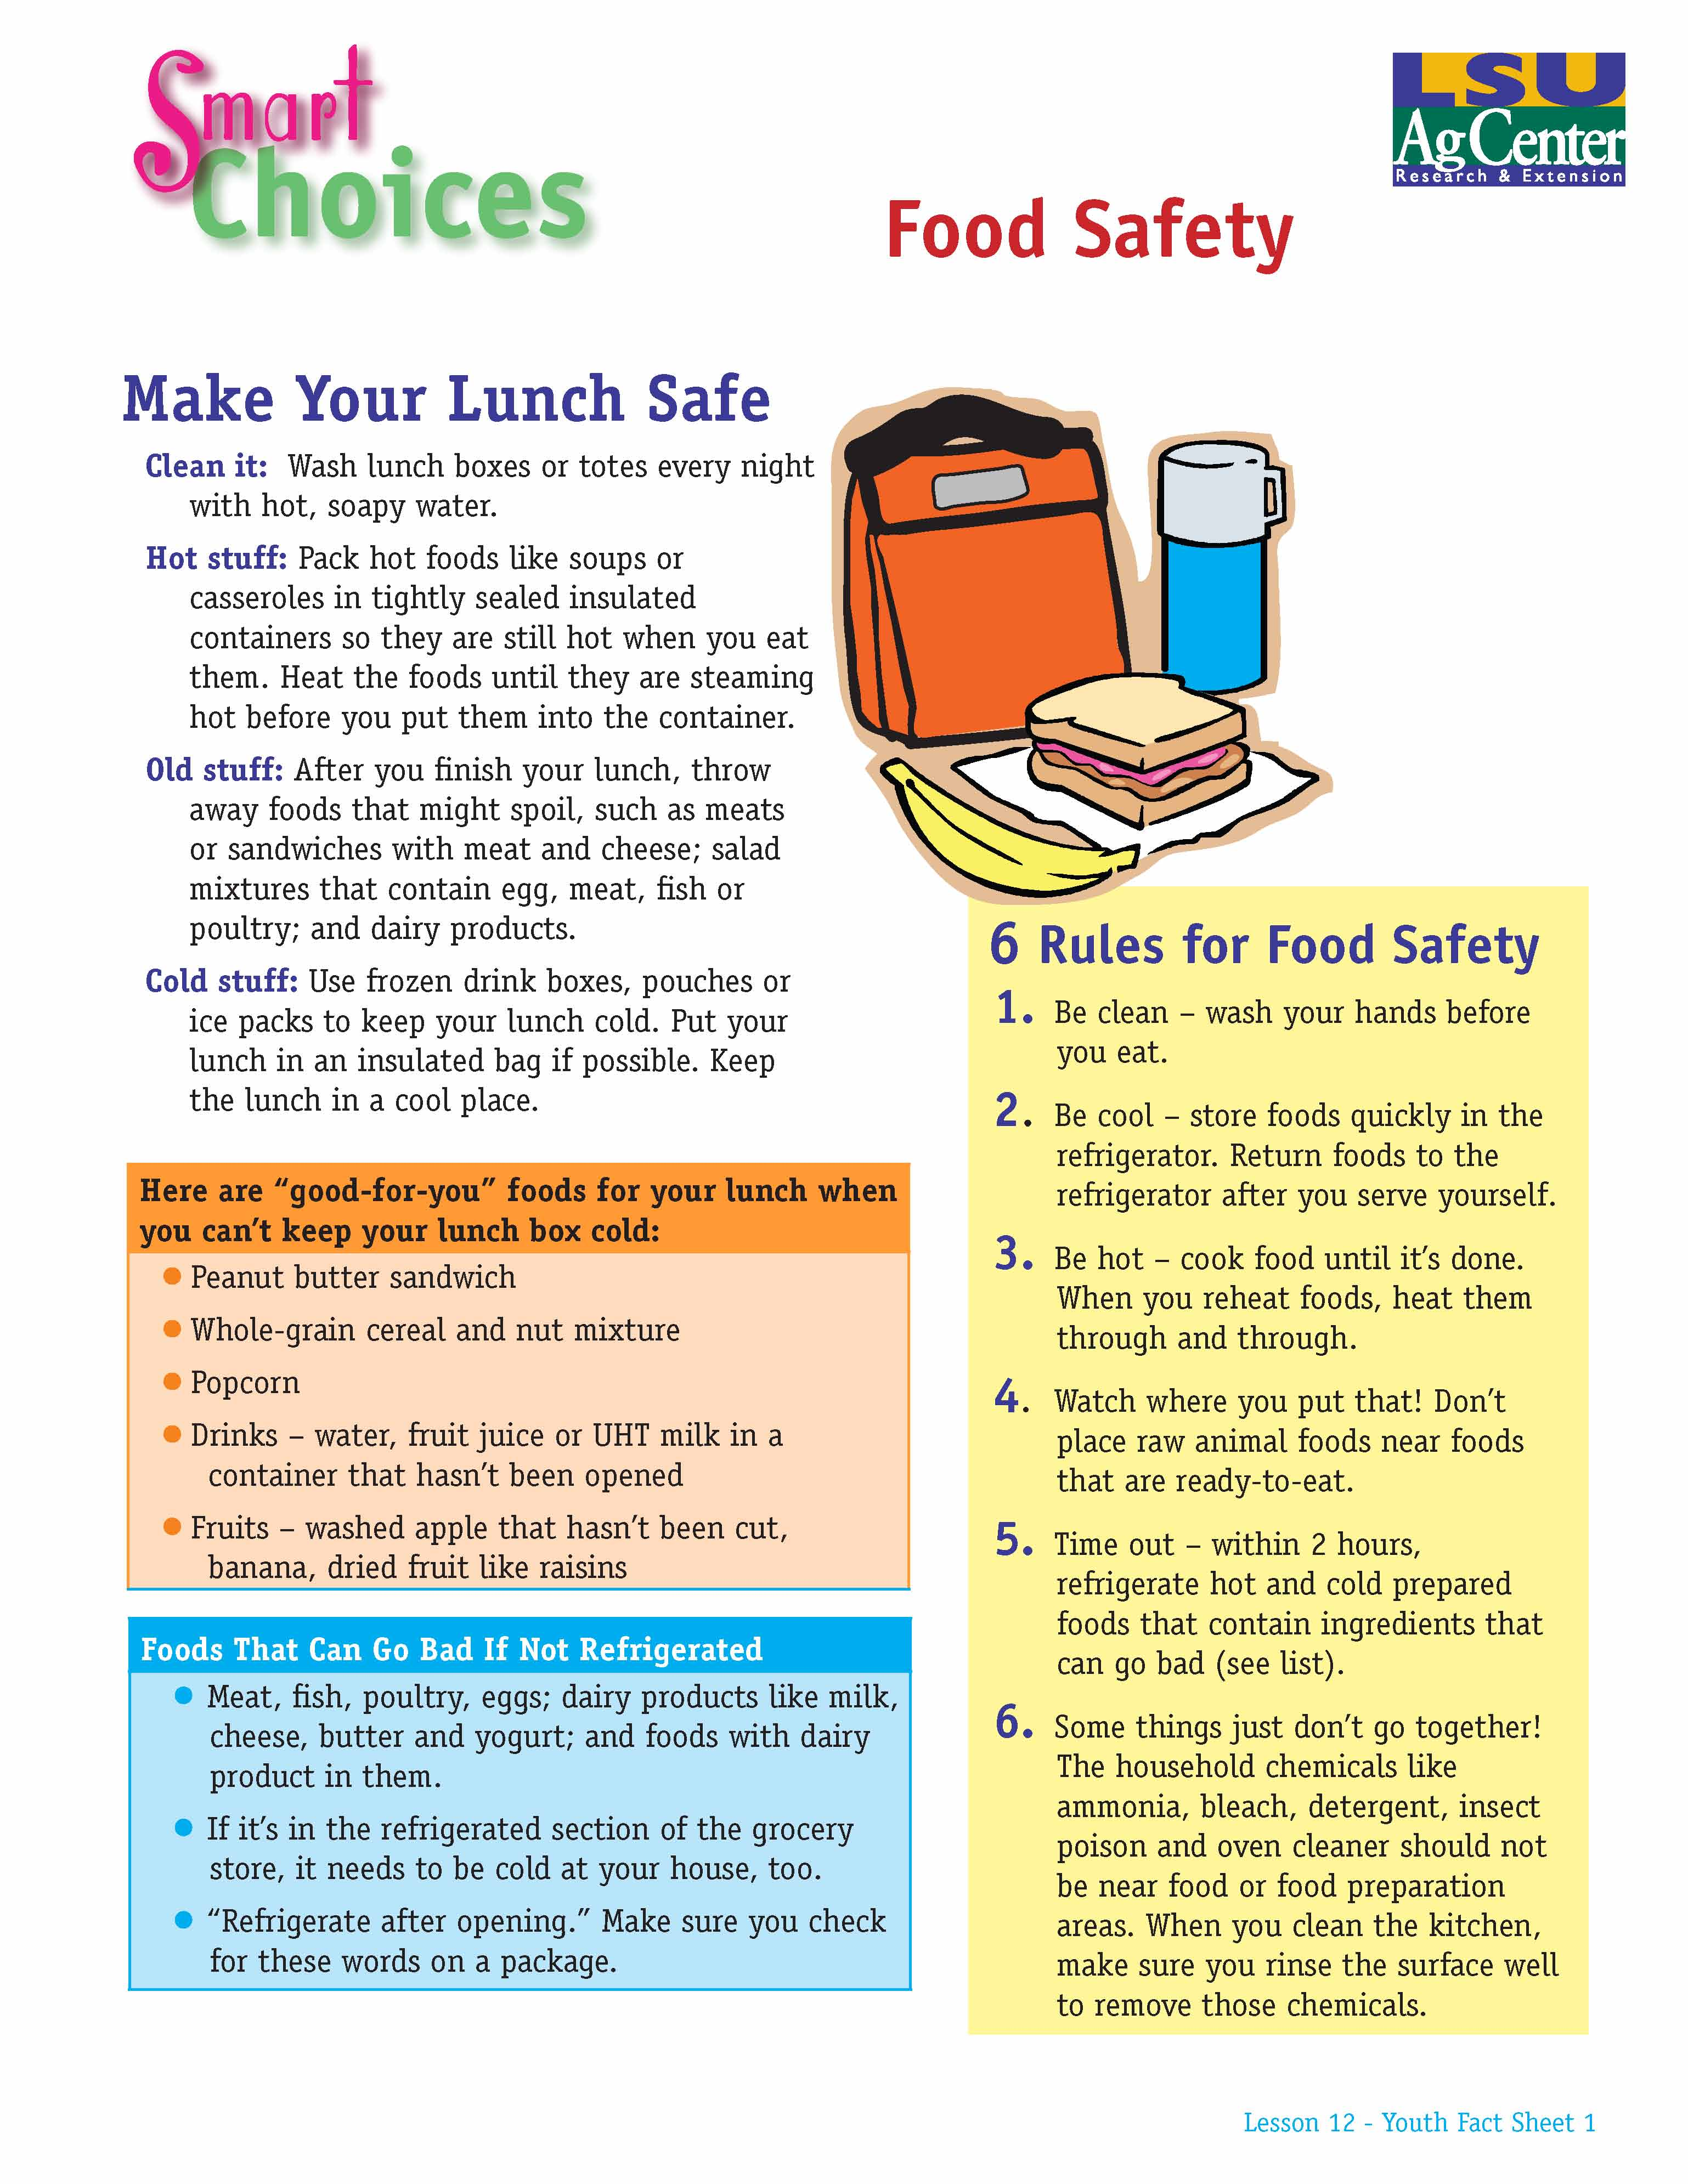 Smart Choices:  Make Your Lunch Safe